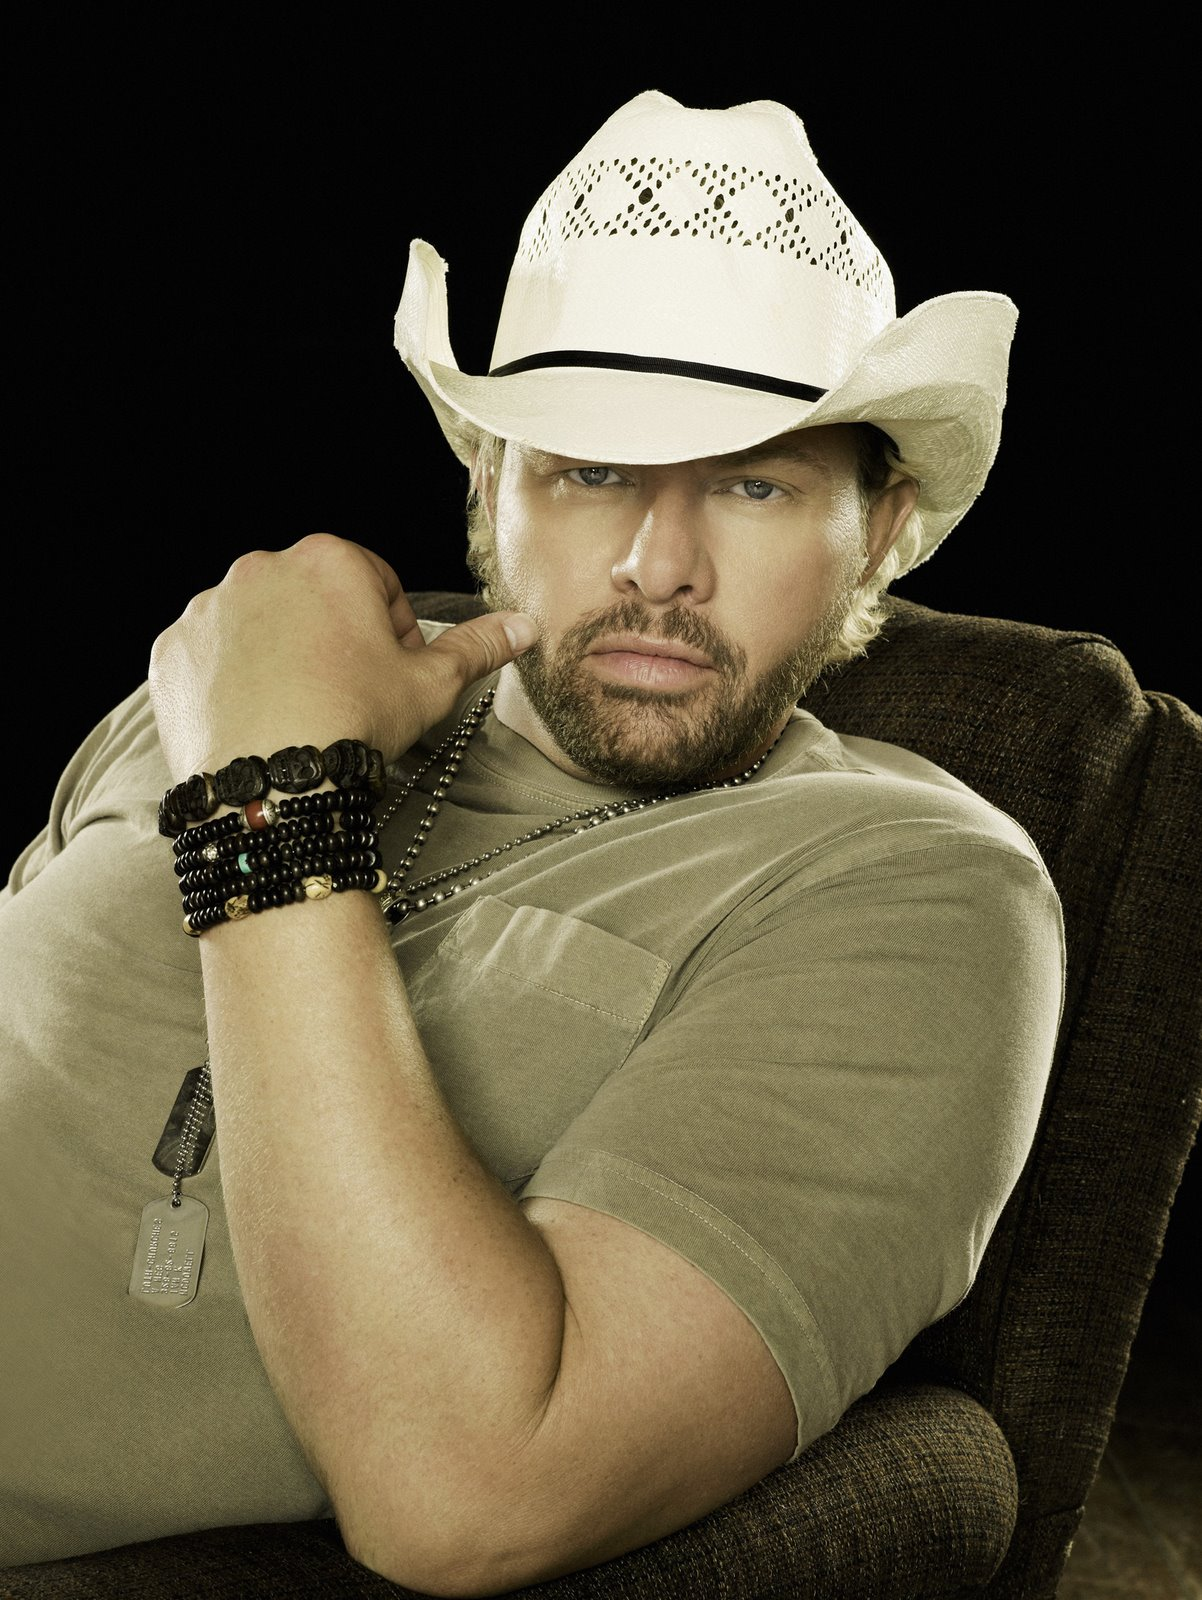 Singer Toby Keith - age: 59